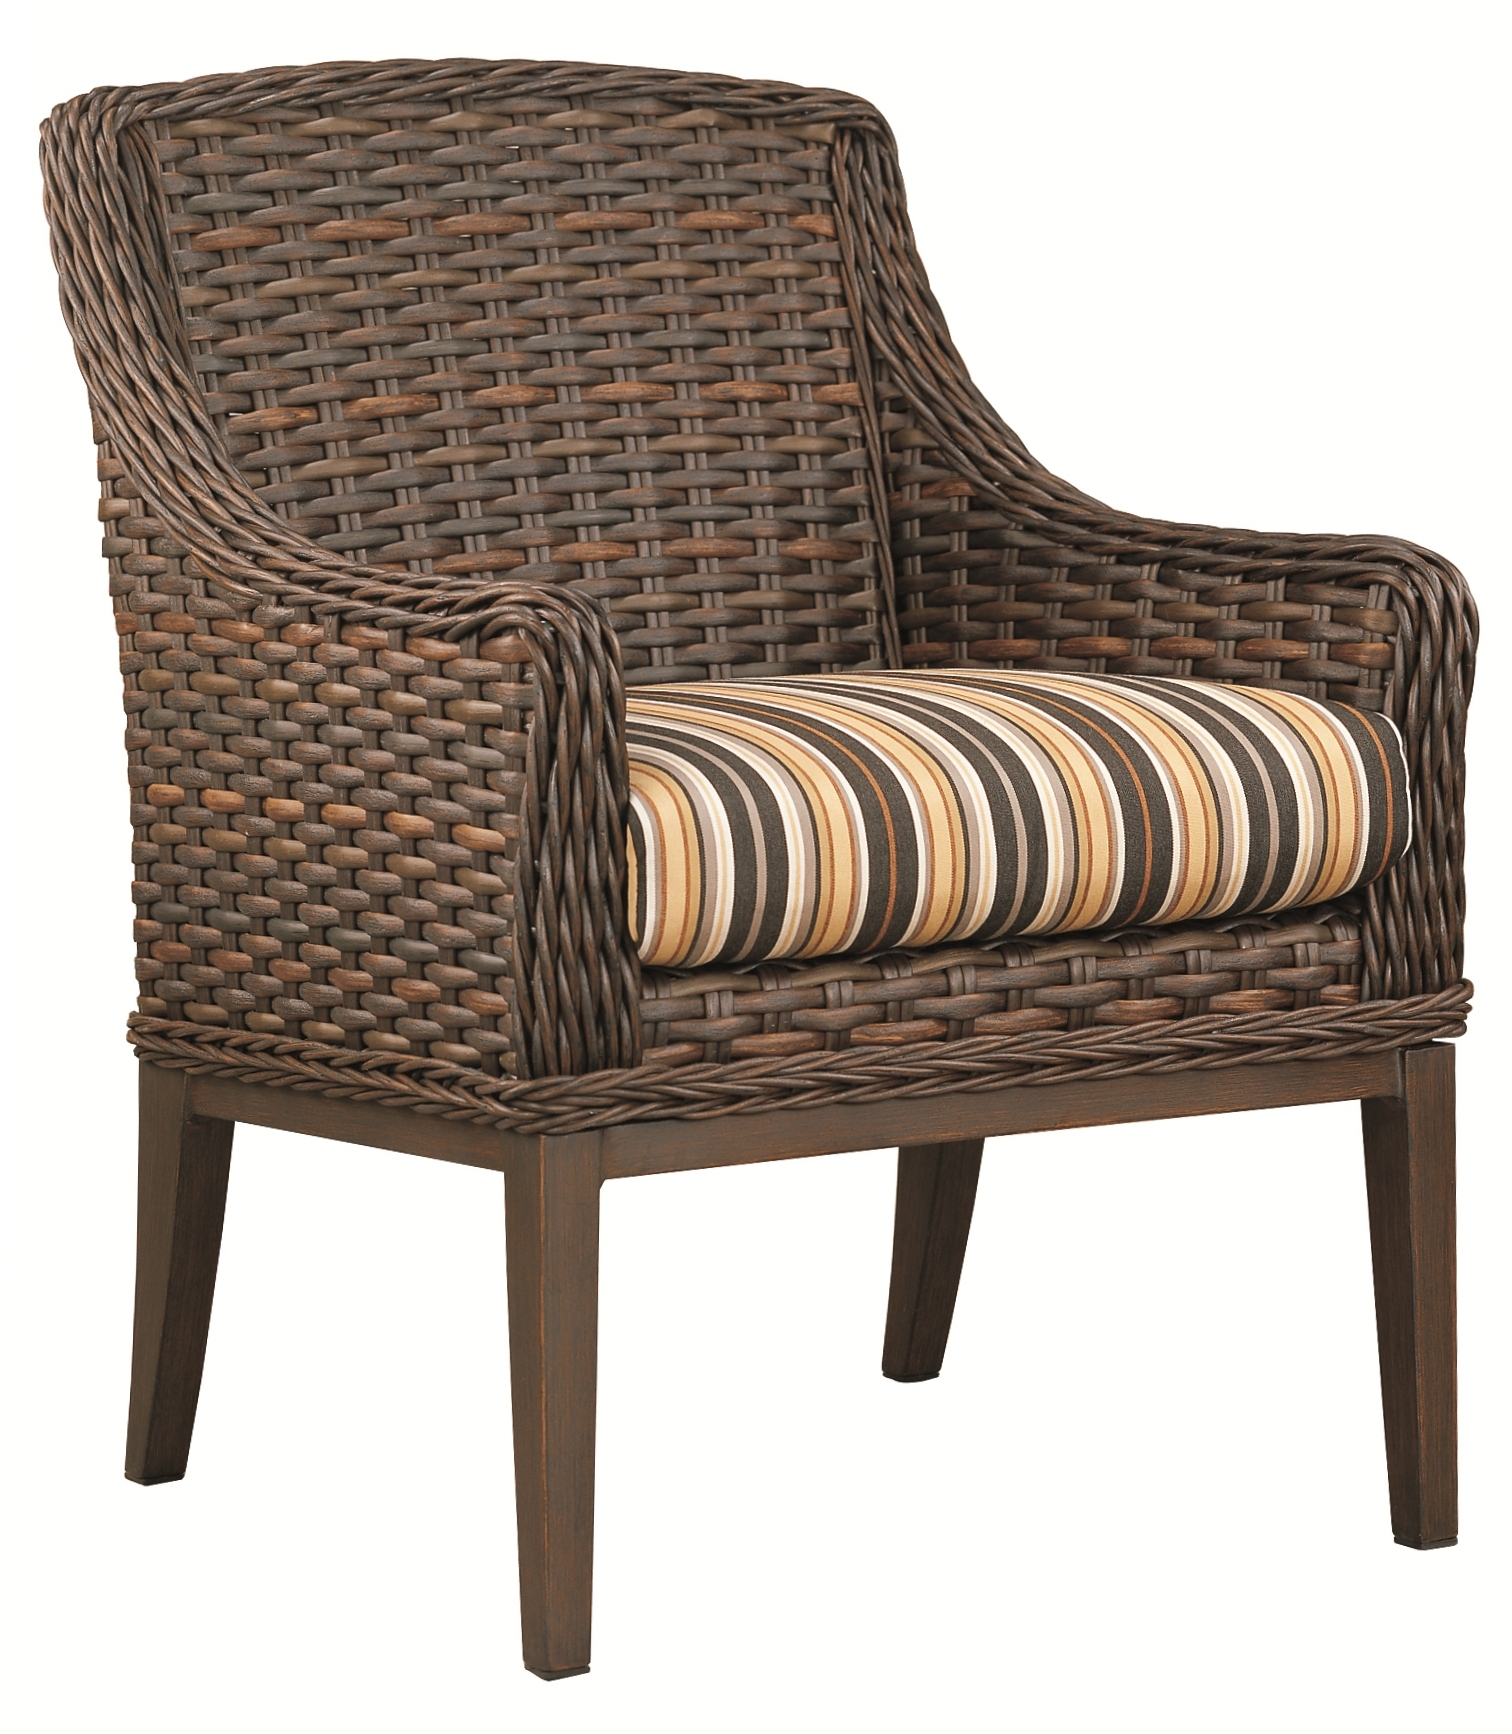 "971221 Catalina Dining Chair    25.2"" x 29"" x 36"""